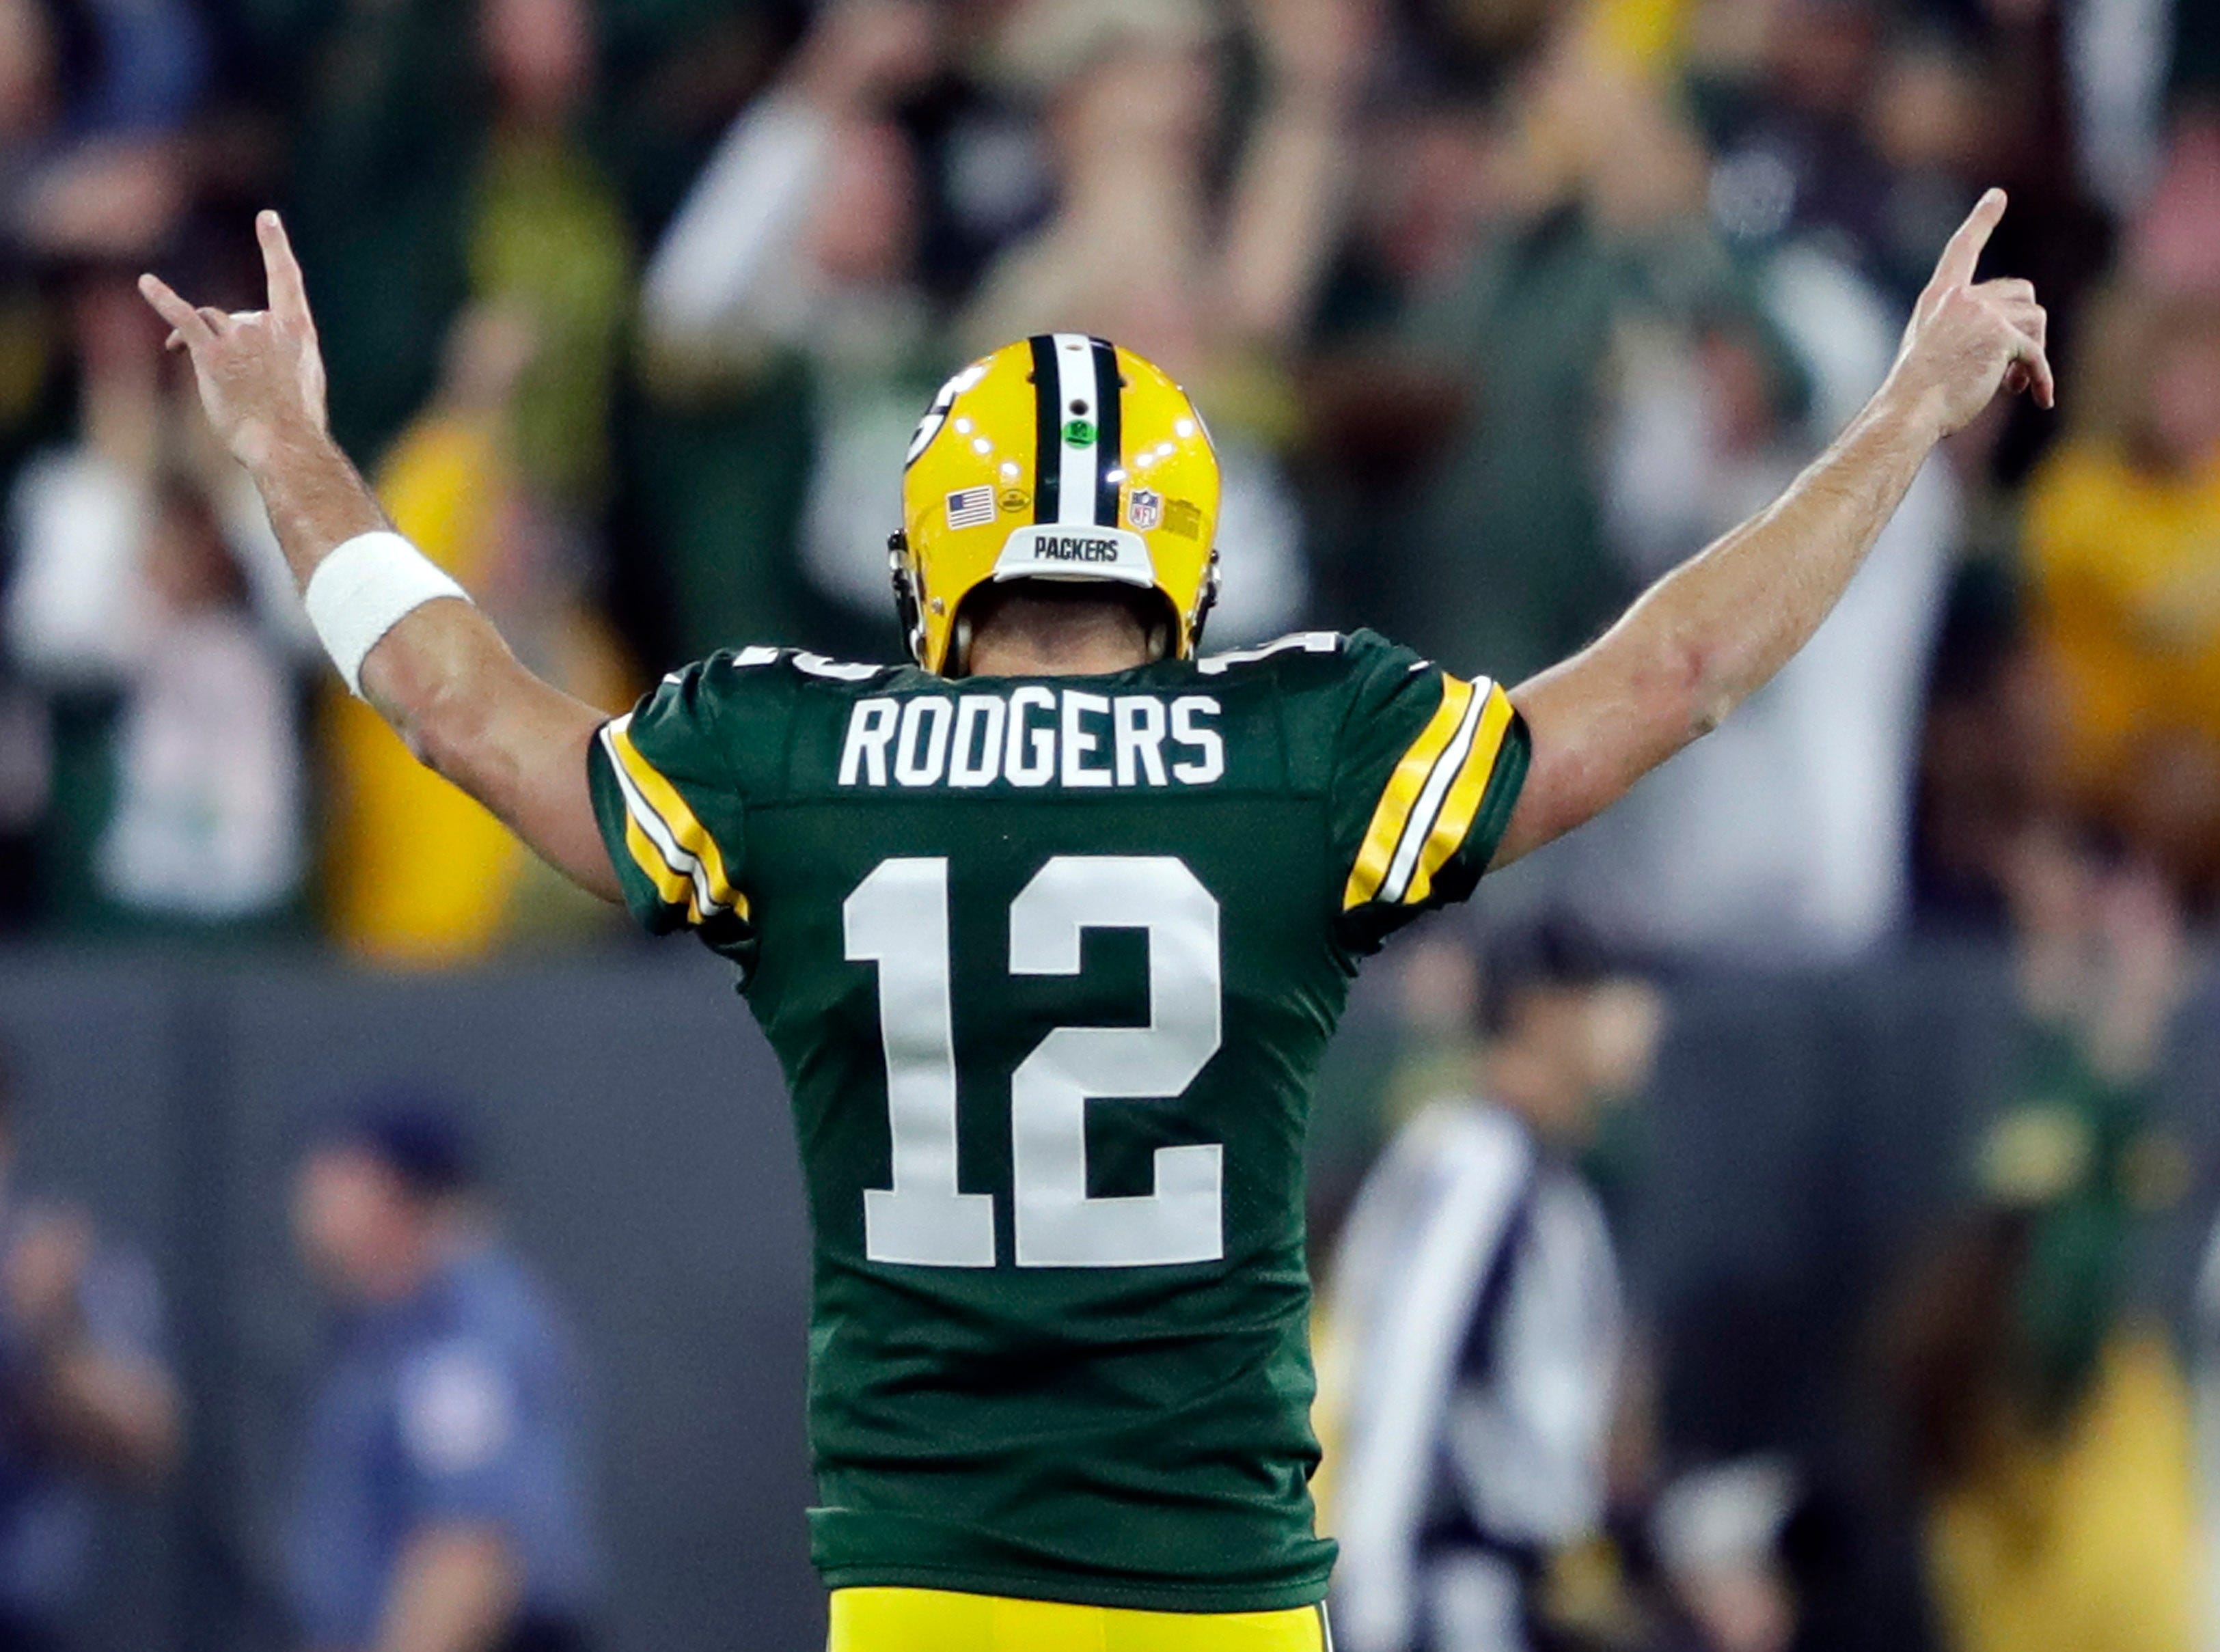 Sept. 9: Green Bay Packers quarterback Aaron Rodgers celebrates the game-winning touchdown pass to Randall Cobb late in the fourth quarter against the Chicago Bears at Lambeau Field, capping a huge comeback that included an injury scare for Rodgers.